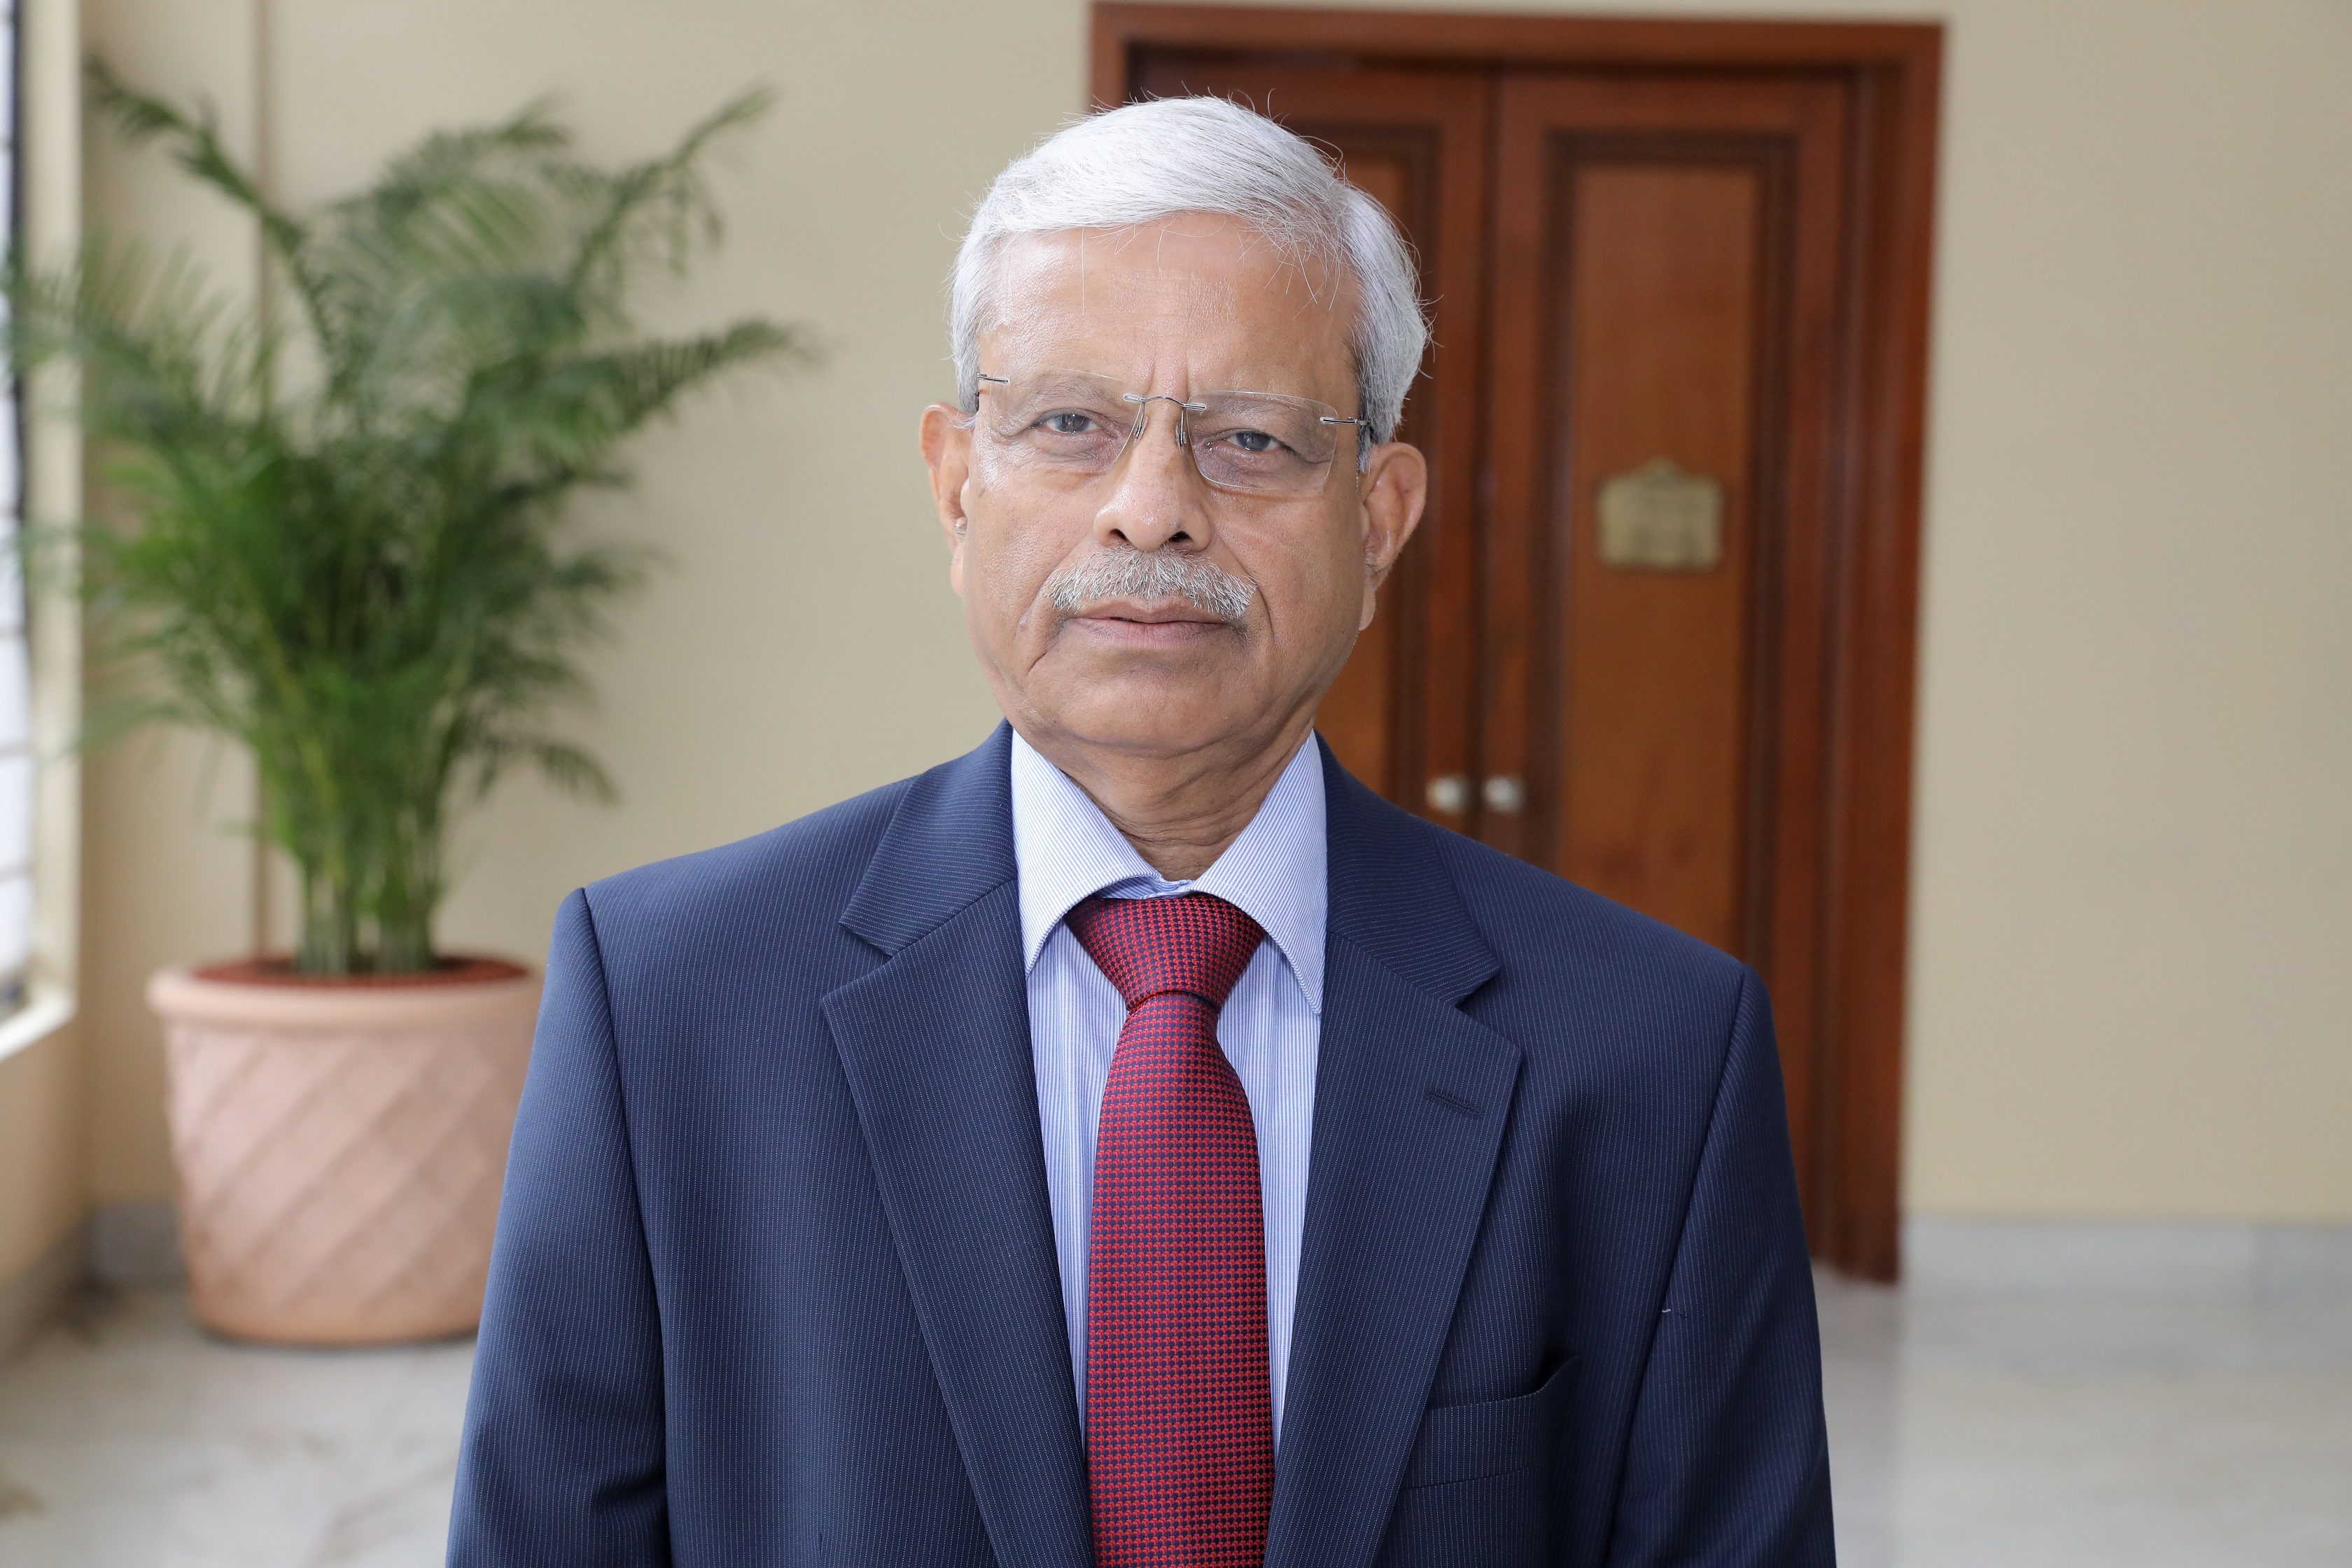 Dr R Mukhopadhyay, director of R&D, JK Tyre & Industries